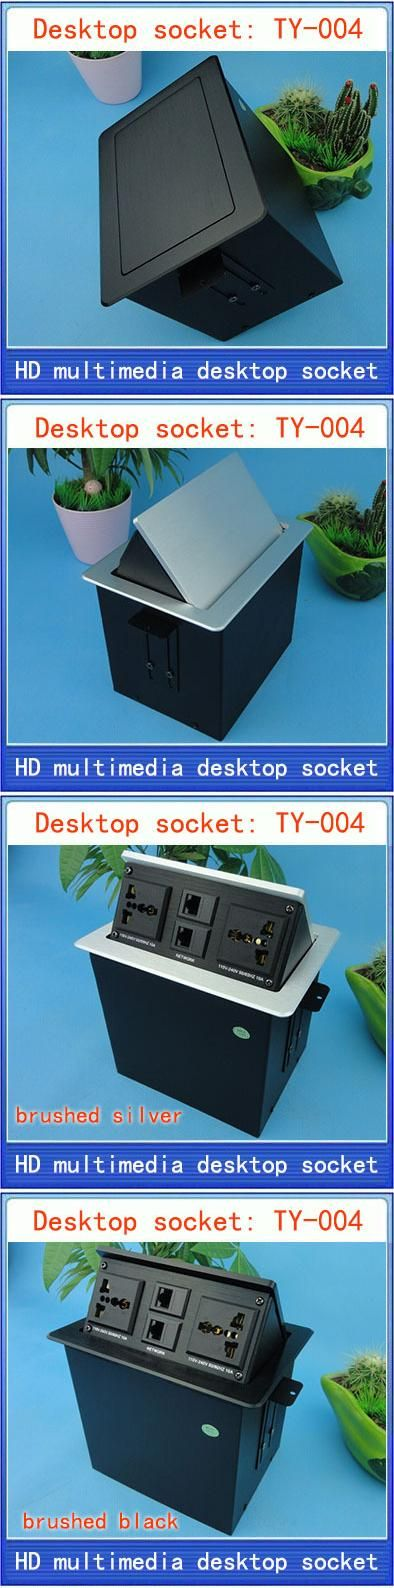 Desktop socket /hidden Multimedia network socket multimedia information box outlet /network RJ45 interface desktop socket TY-004